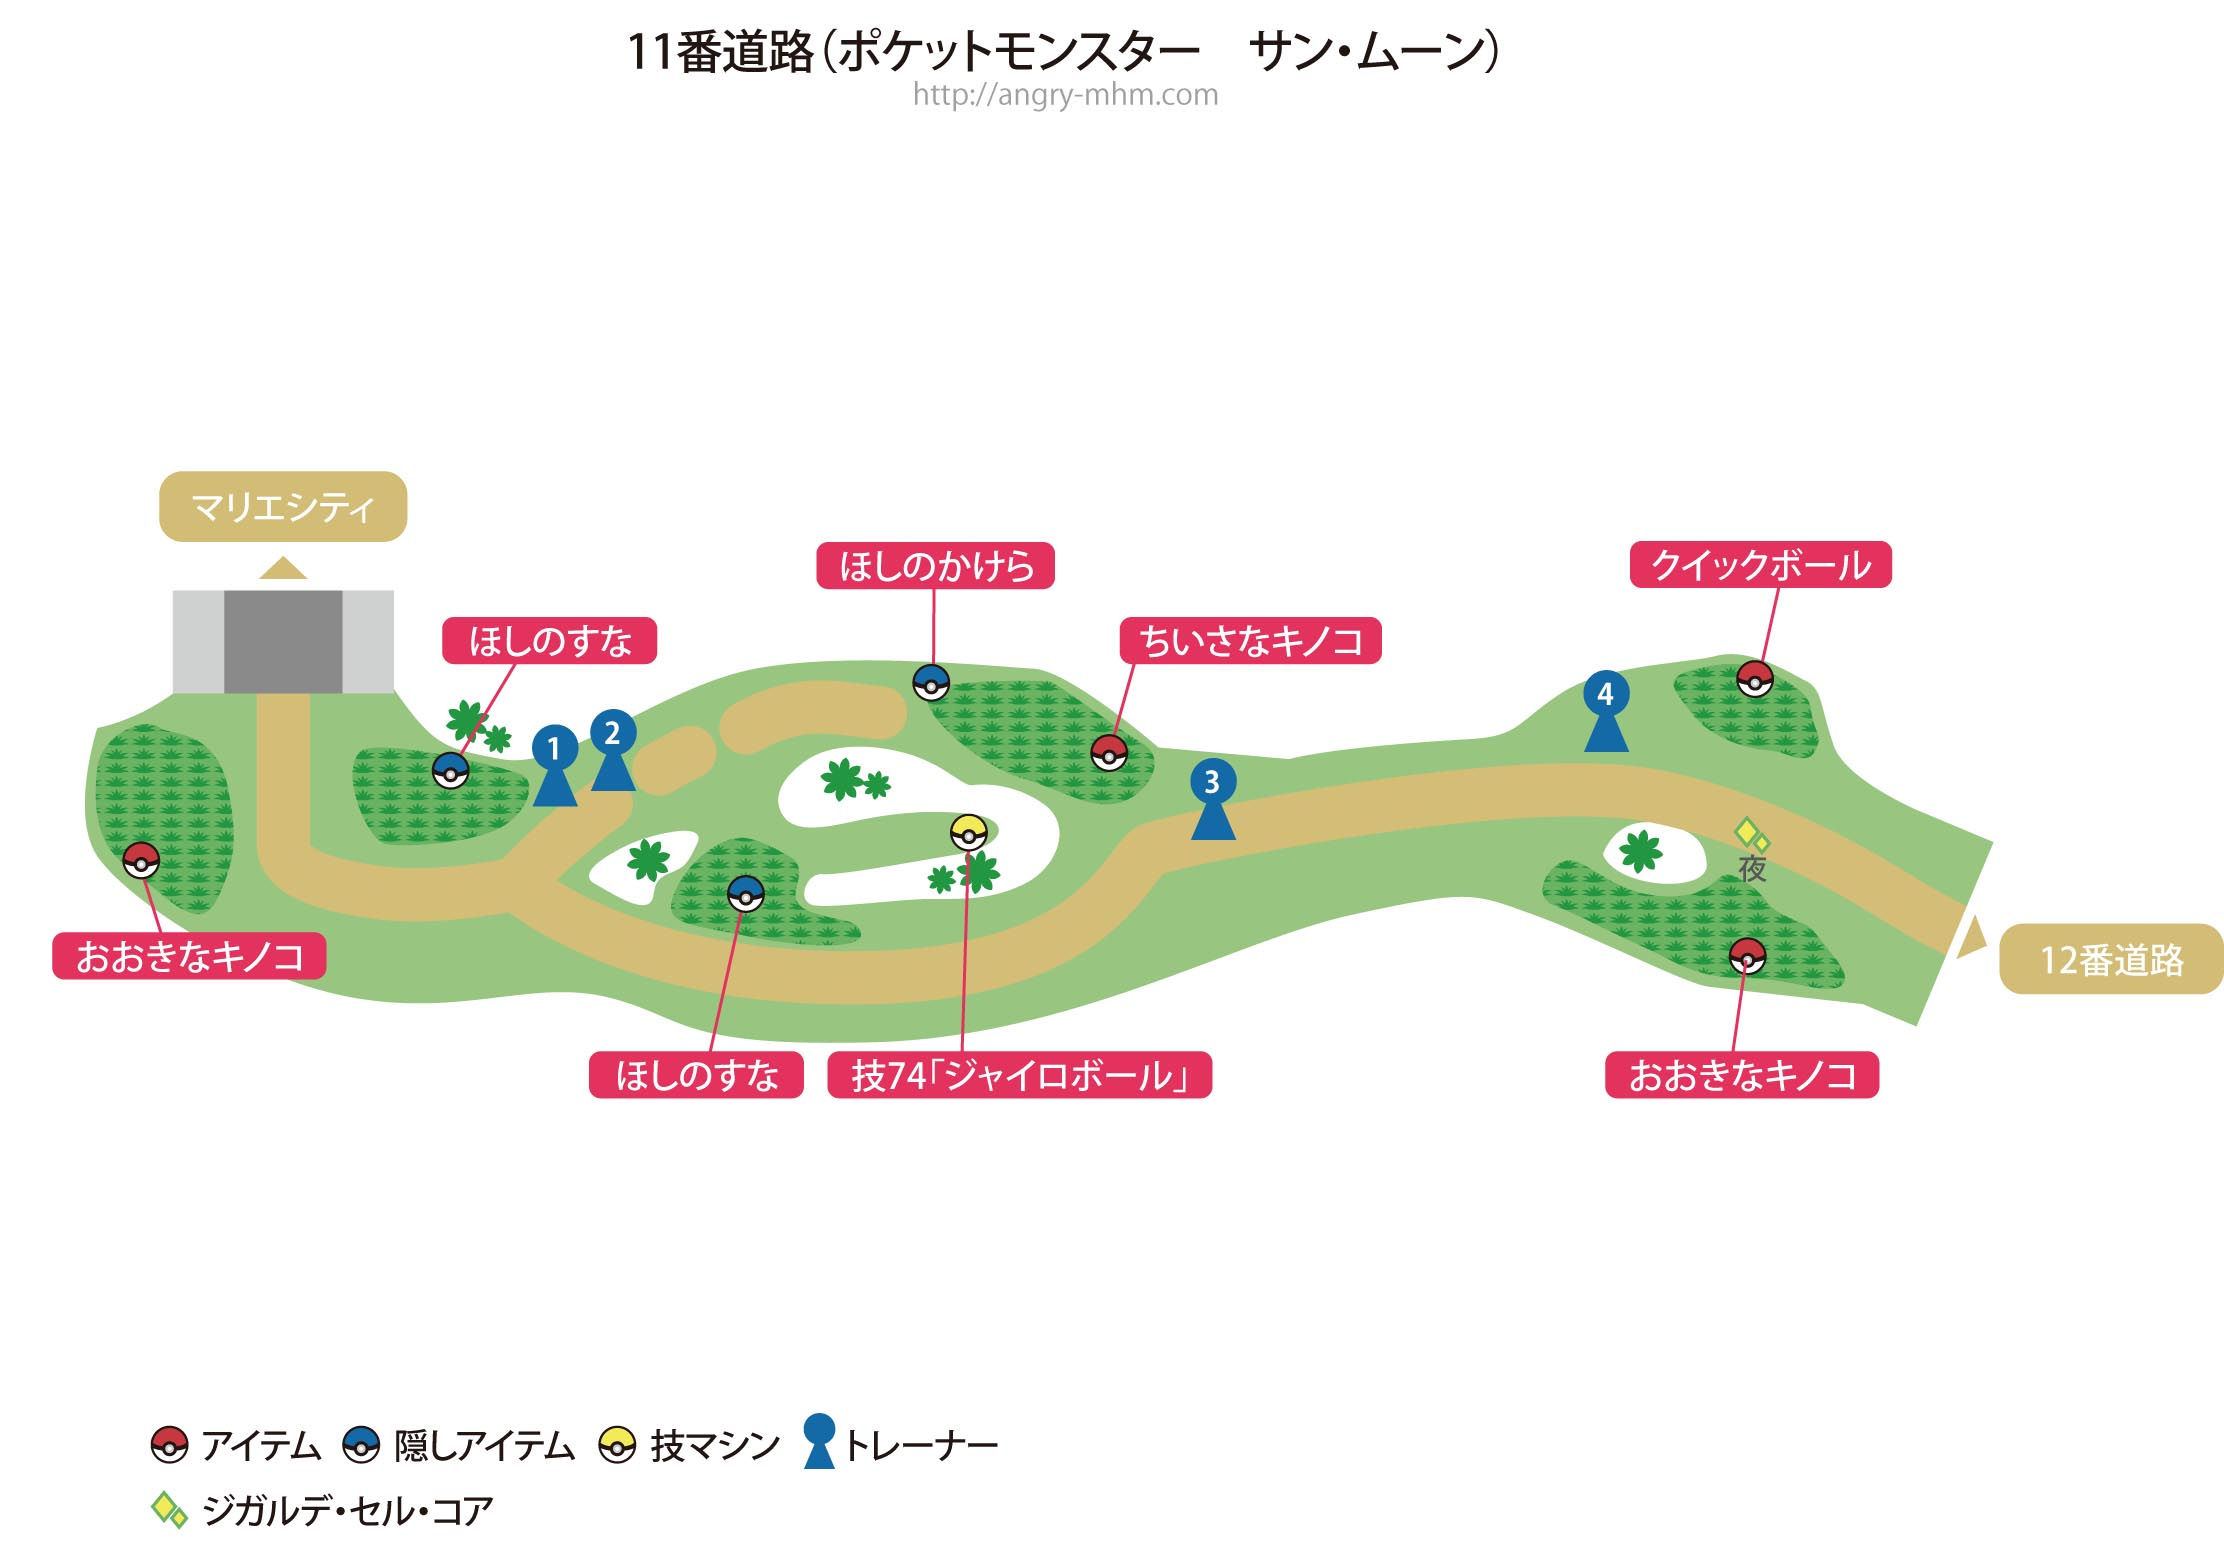 map-route-11